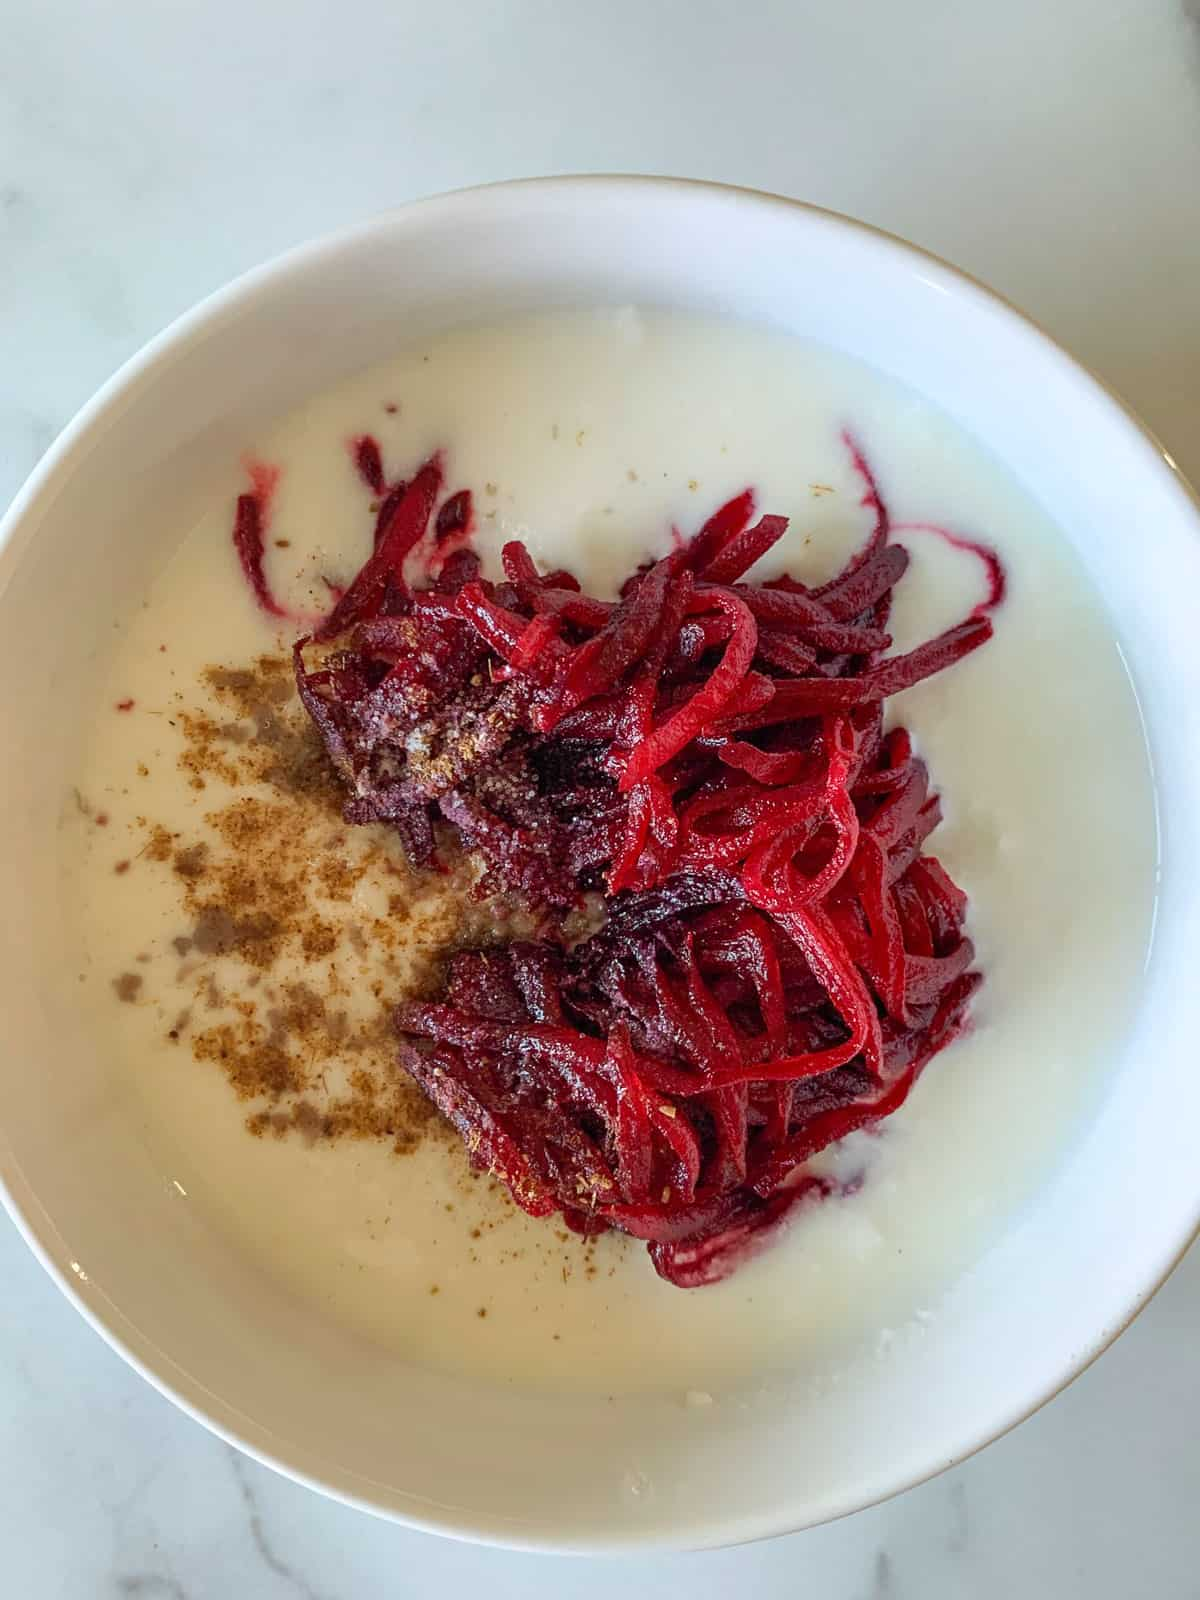 Shredded beets added to the yogurt